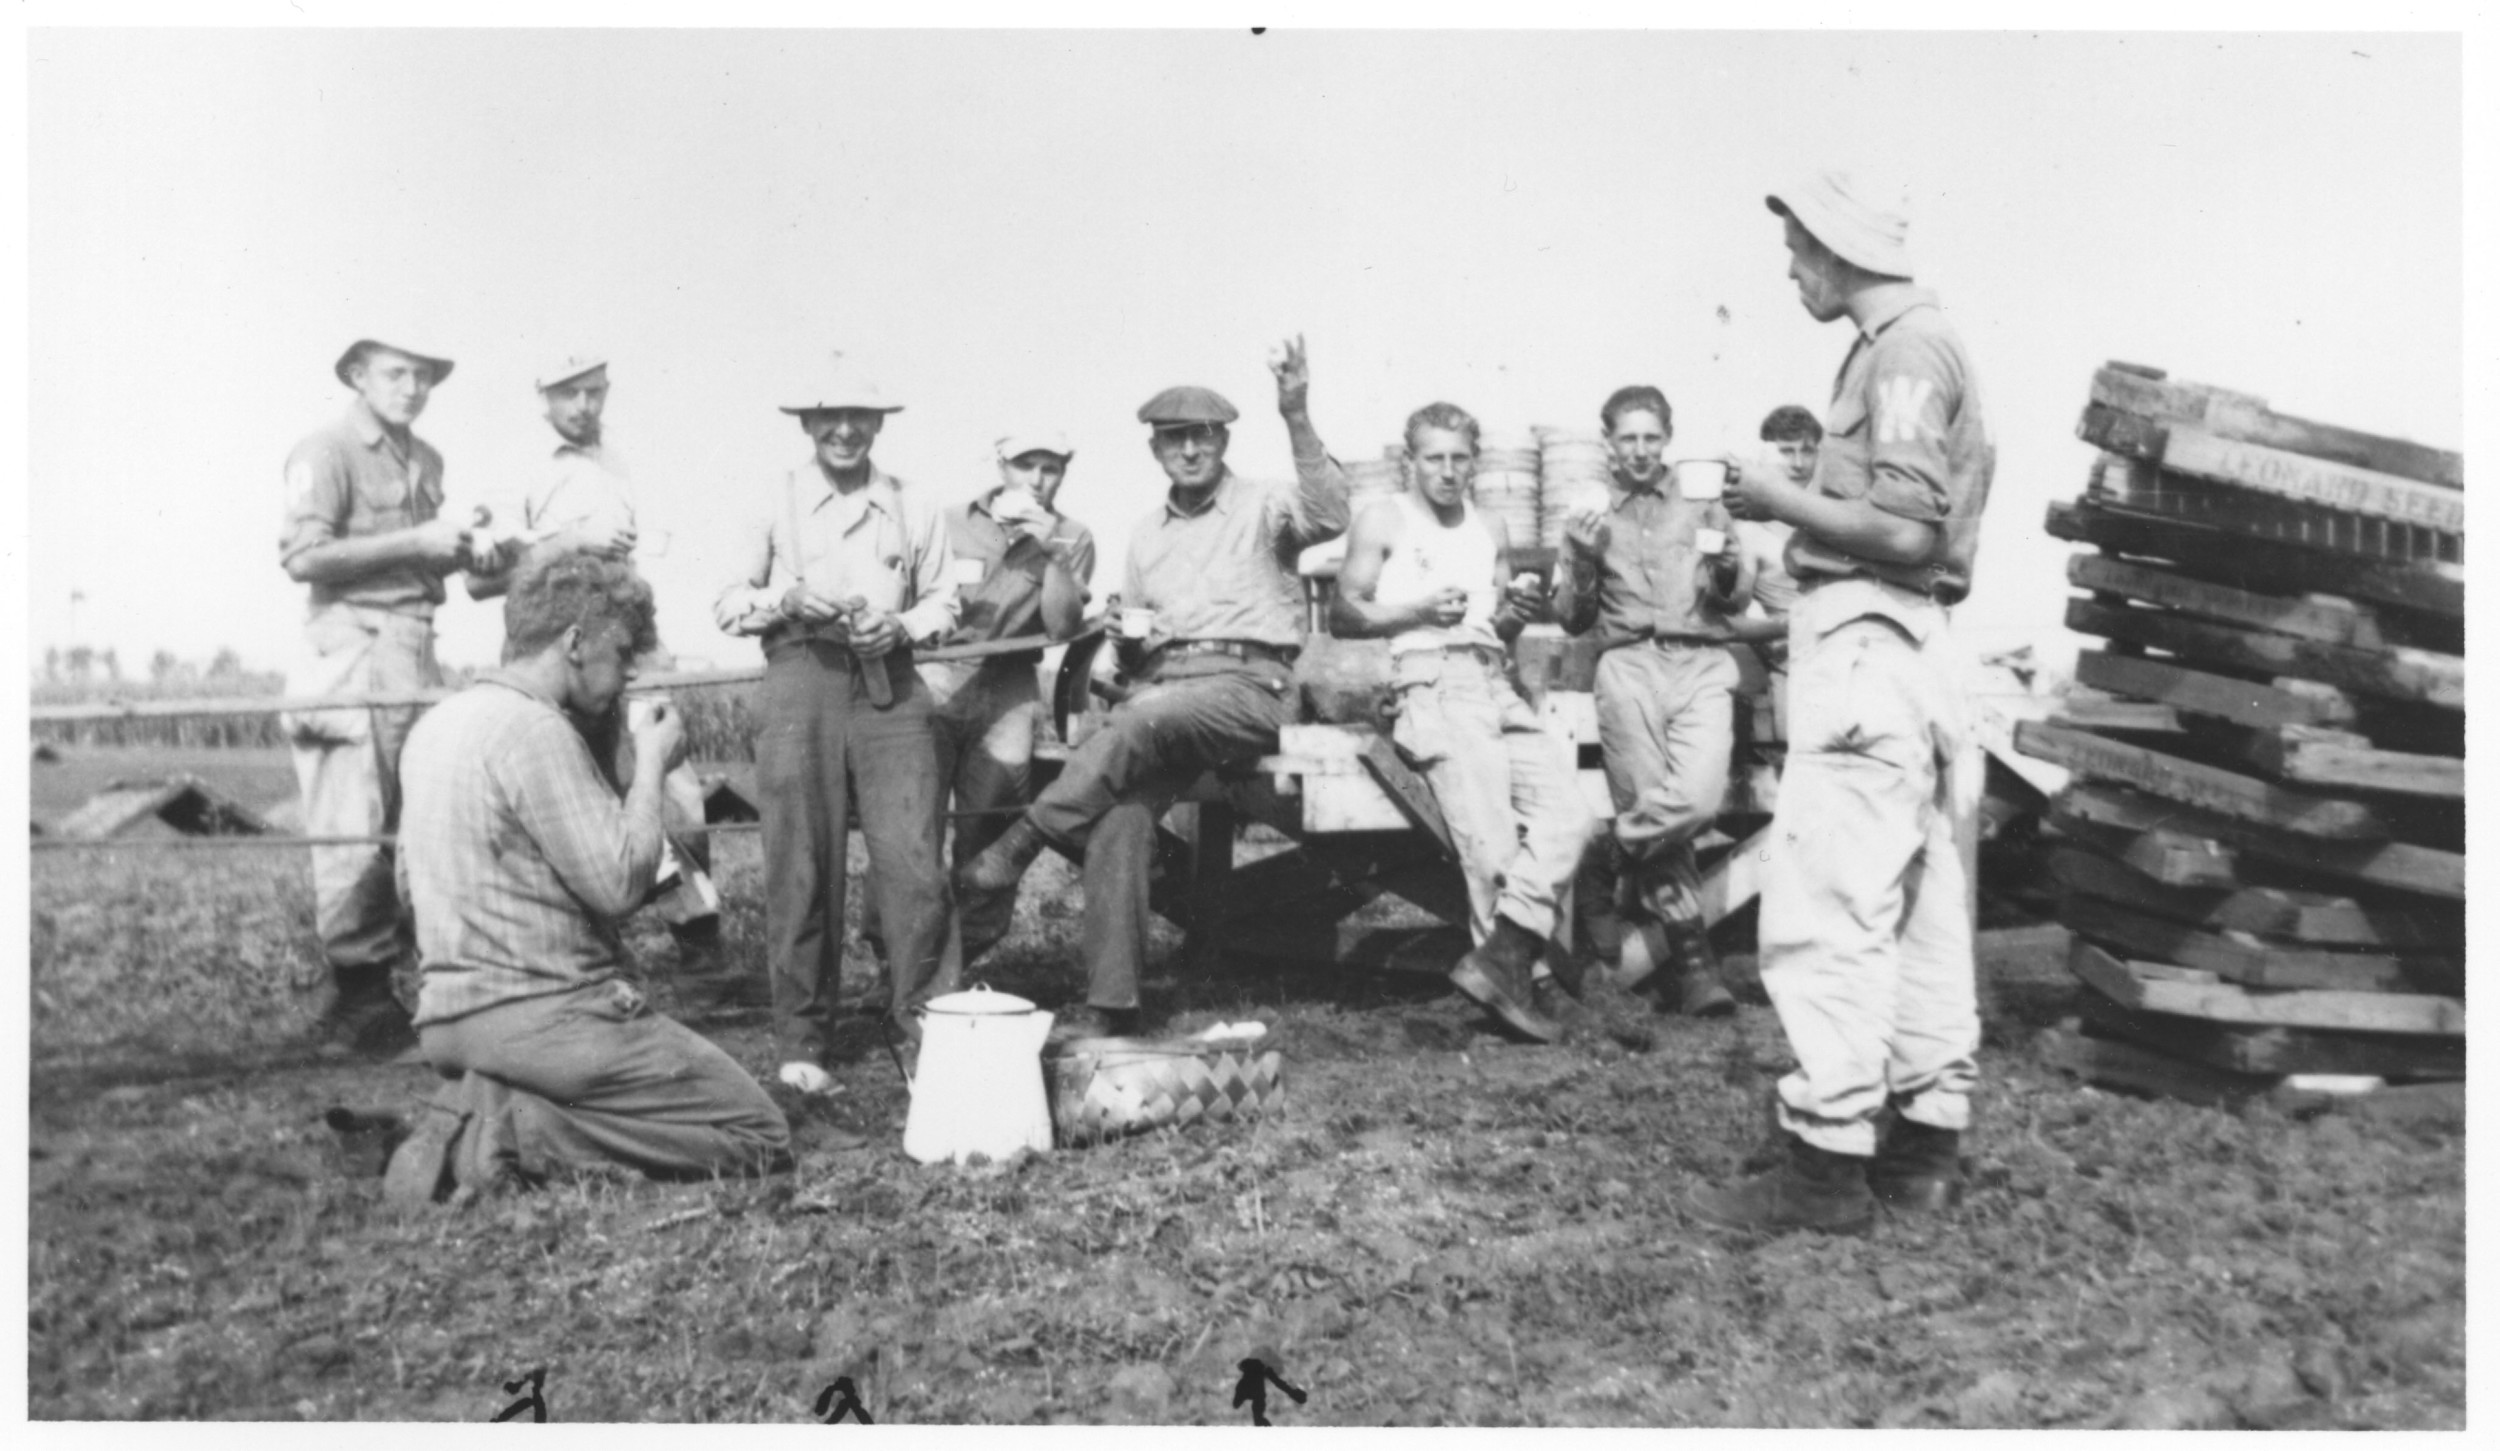 "These German POWS lived at Camp Pine in Des Plaines during World War II. They are shown eating lunch at the Mahler Farm where they worked. Also pictured are Fred Mahler, August Sell, and Russell Mahler.         Normal   0           false   false   false     EN-US   X-NONE   X-NONE                                                                                                                                                                                                                                                                                                                                                                           /* Style Definitions */  table.MsoNormalTable 	{mso-style-name:""Table Normal""; 	mso-tstyle-rowband-size:0; 	mso-tstyle-colband-size:0; 	mso-style-noshow:yes; 	mso-style-priority:99; 	mso-style-parent:""""; 	mso-padding-alt:0in 5.4pt 0in 5.4pt; 	mso-para-margin-top:0in; 	mso-para-margin-right:0in; 	mso-para-margin-bottom:10.0pt; 	mso-para-margin-left:0in; 	line-height:115%; 	mso-pagination:widow-orphan; 	font-size:11.0pt; 	font-family:""Calibri"",""sans-serif""; 	mso-ascii-font-family:Calibri; 	mso-ascii-theme-font:minor-latin; 	mso-hansi-font-family:Calibri; 	mso-hansi-theme-font:minor-latin;}"